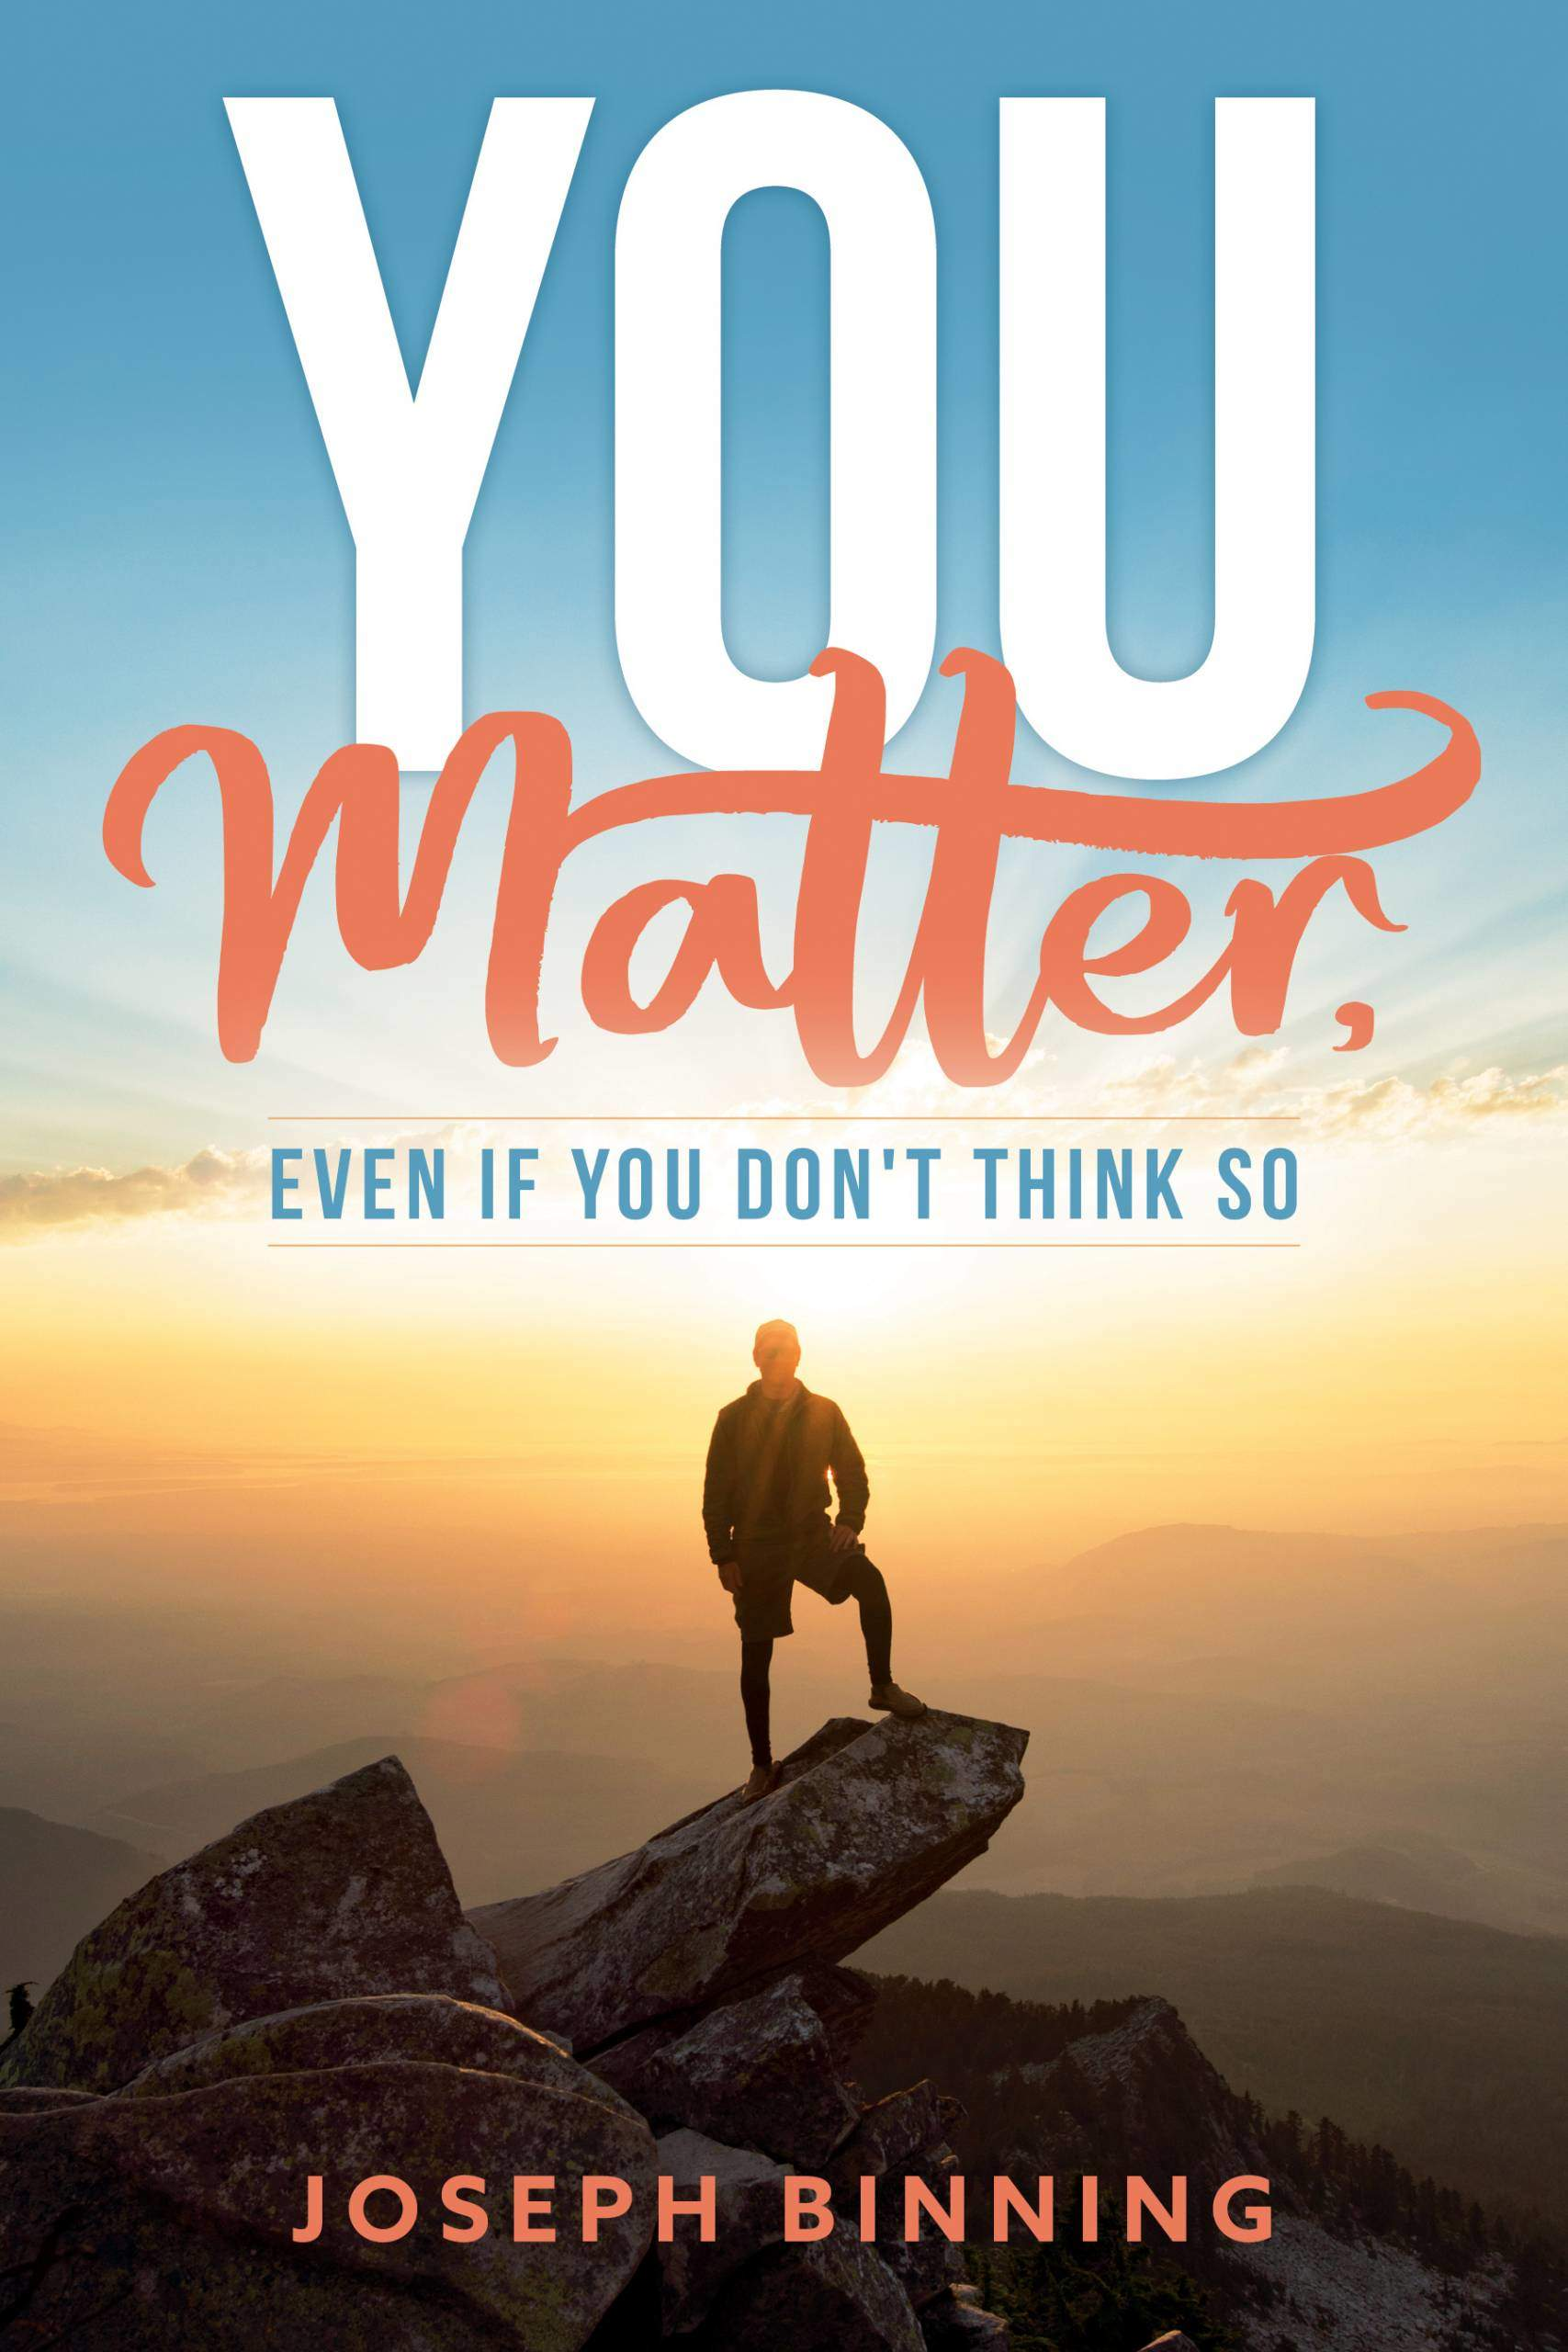 You Matter, even if you don't think so book campaign